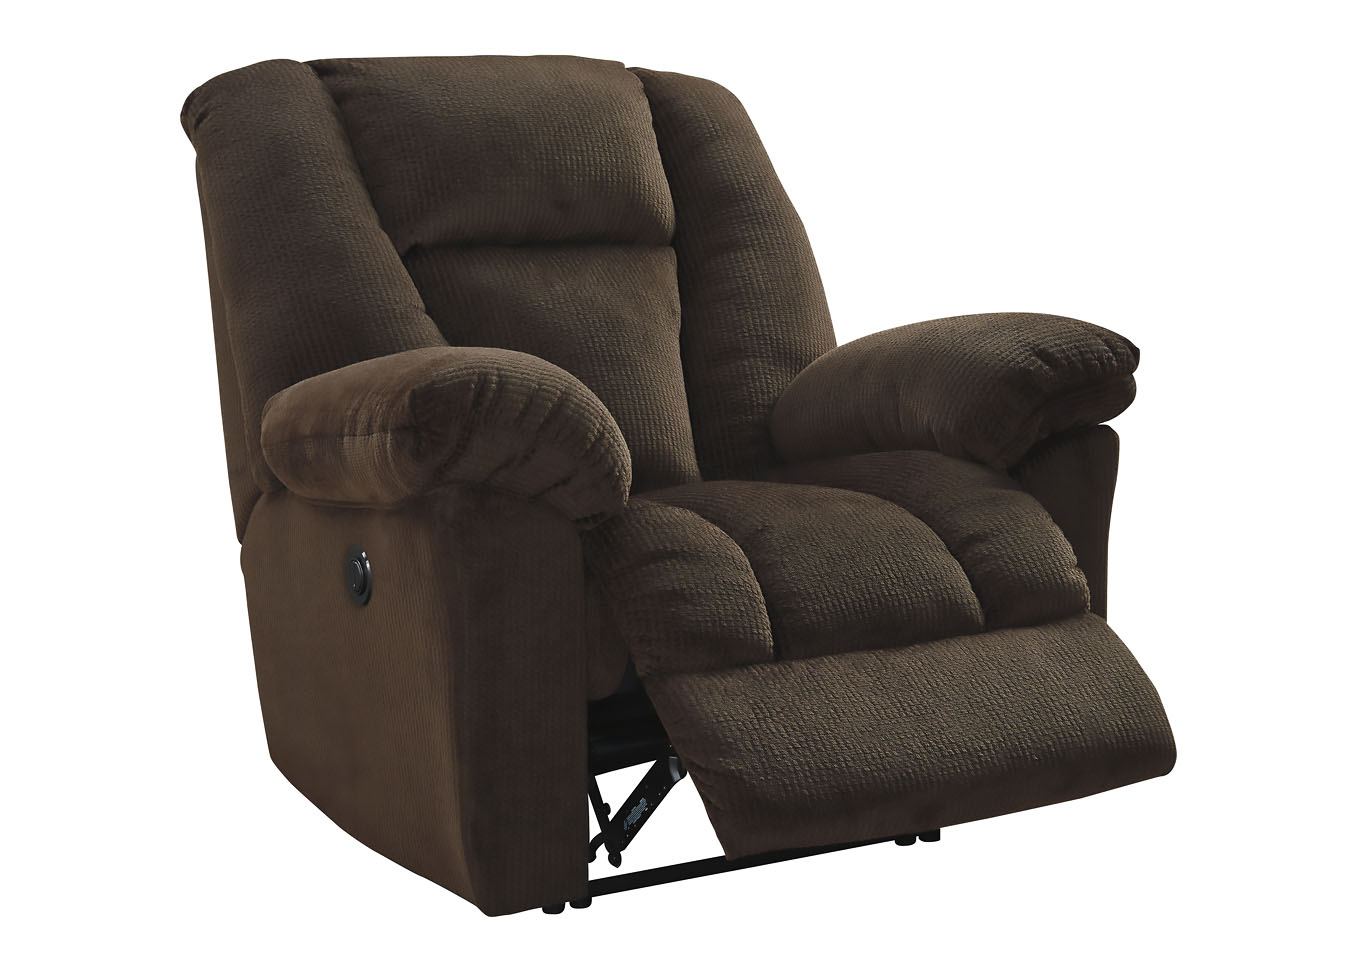 Nimmons Chocolate Power Recliner,Signature Design By Ashley